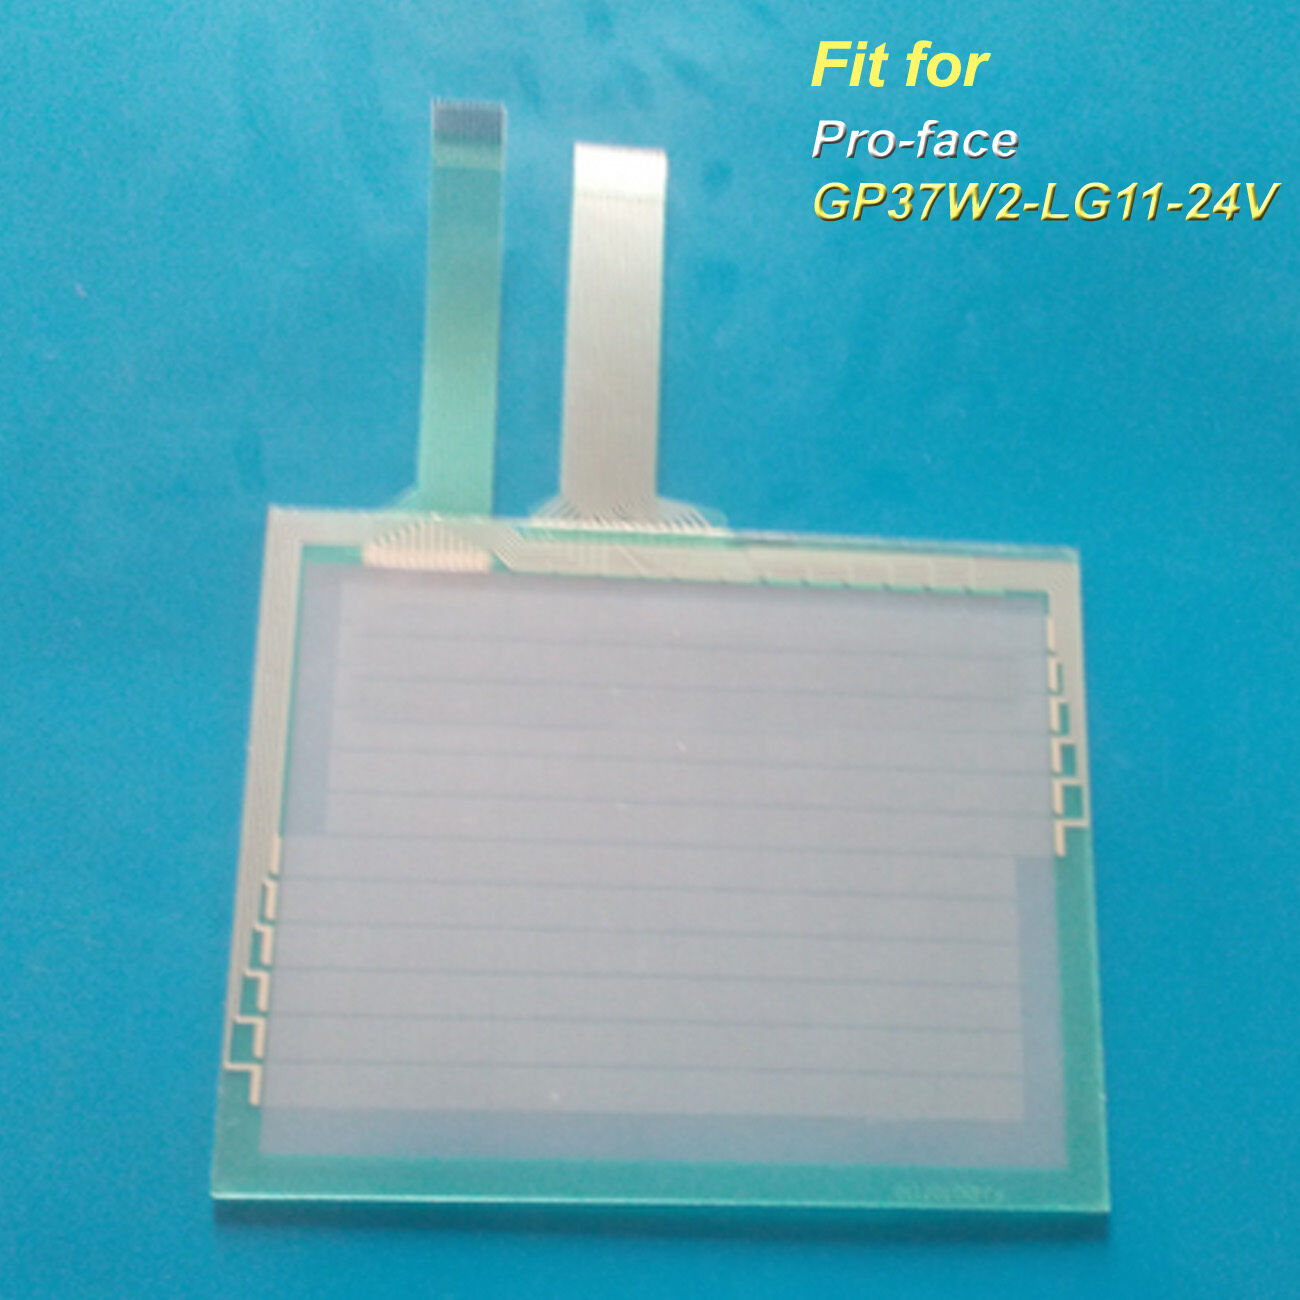 1PC New Touch Screen Glass for Pro-face GP37W2-LG11-24V